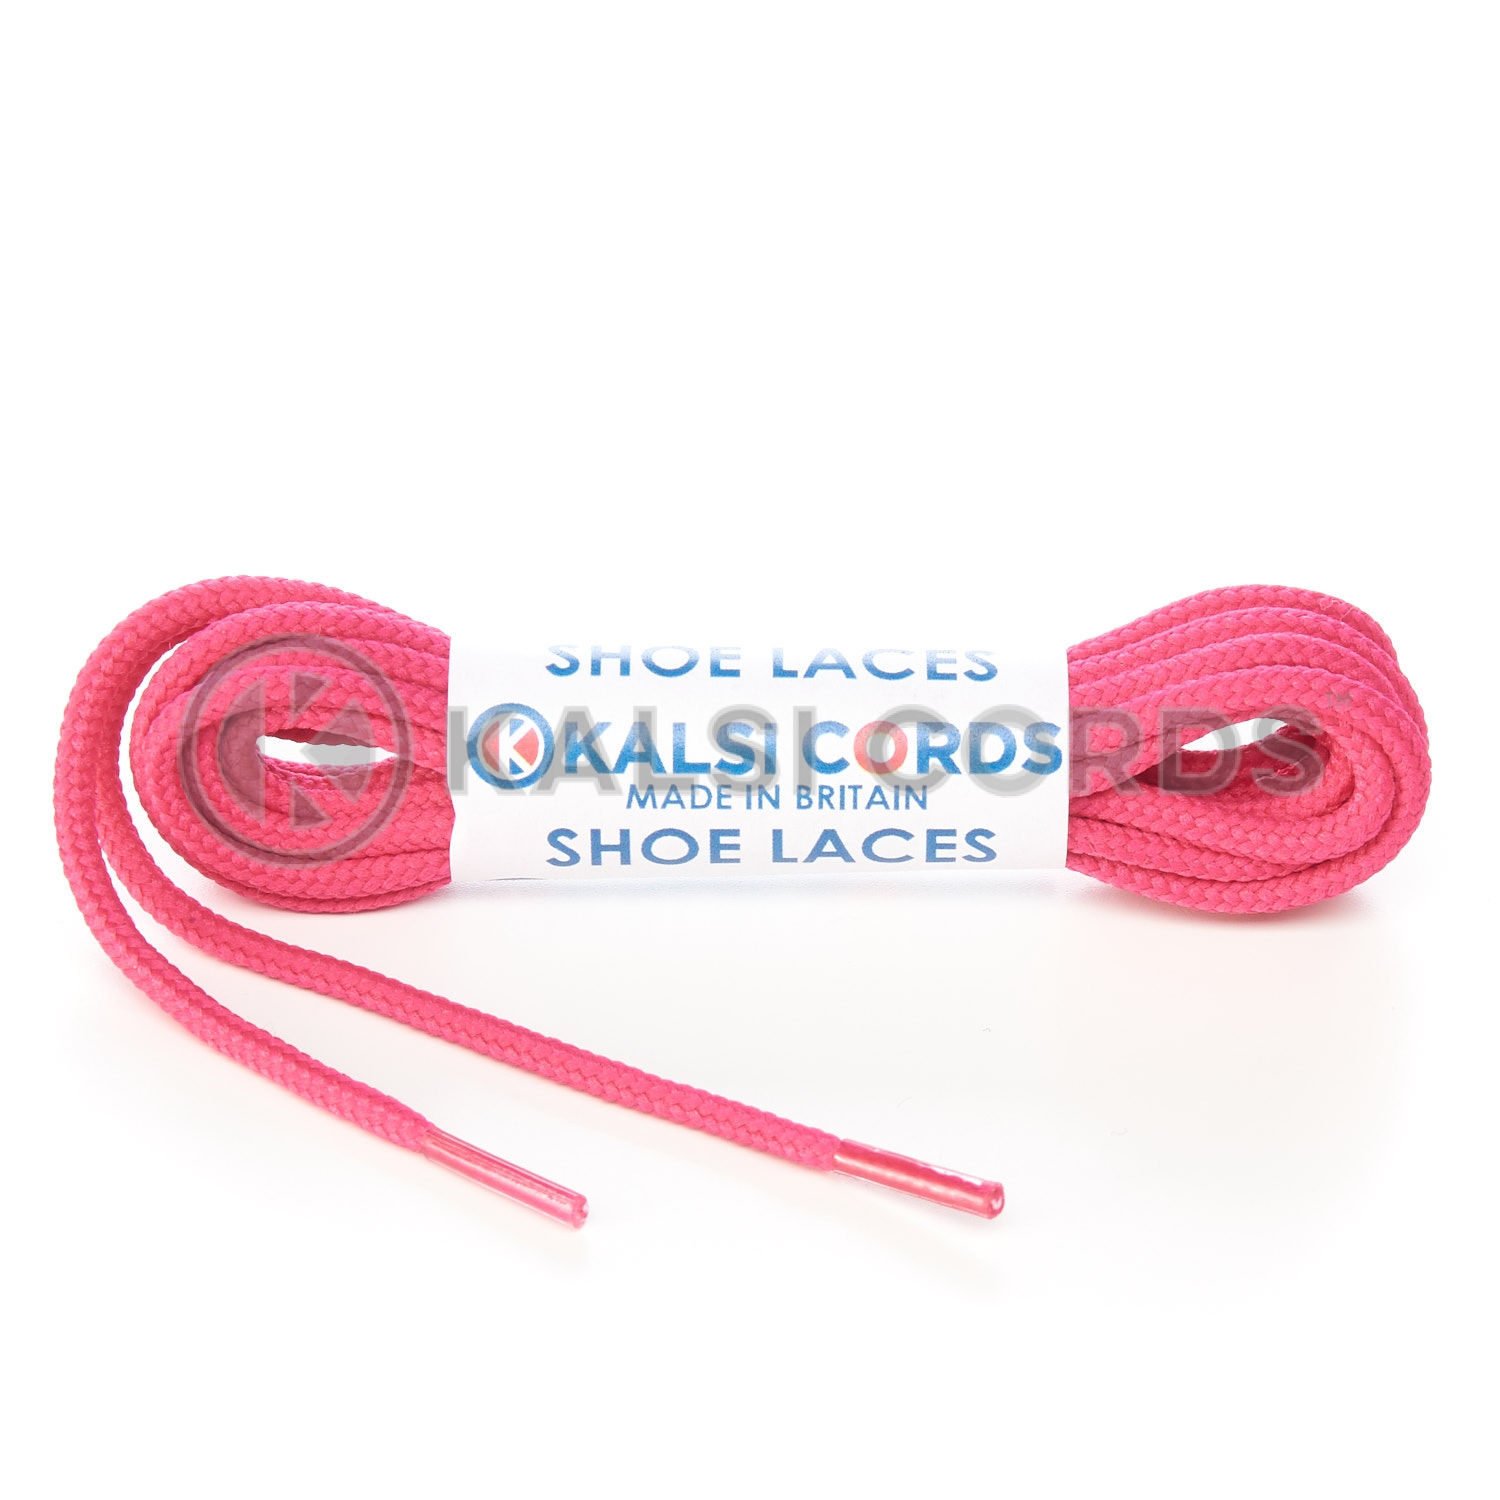 T460 2mm Thin Fine Round Cord Shoe Laces Cerise Pink PG391 Kids Trainers Adults Brogue Formal Boots Kalsi Cords